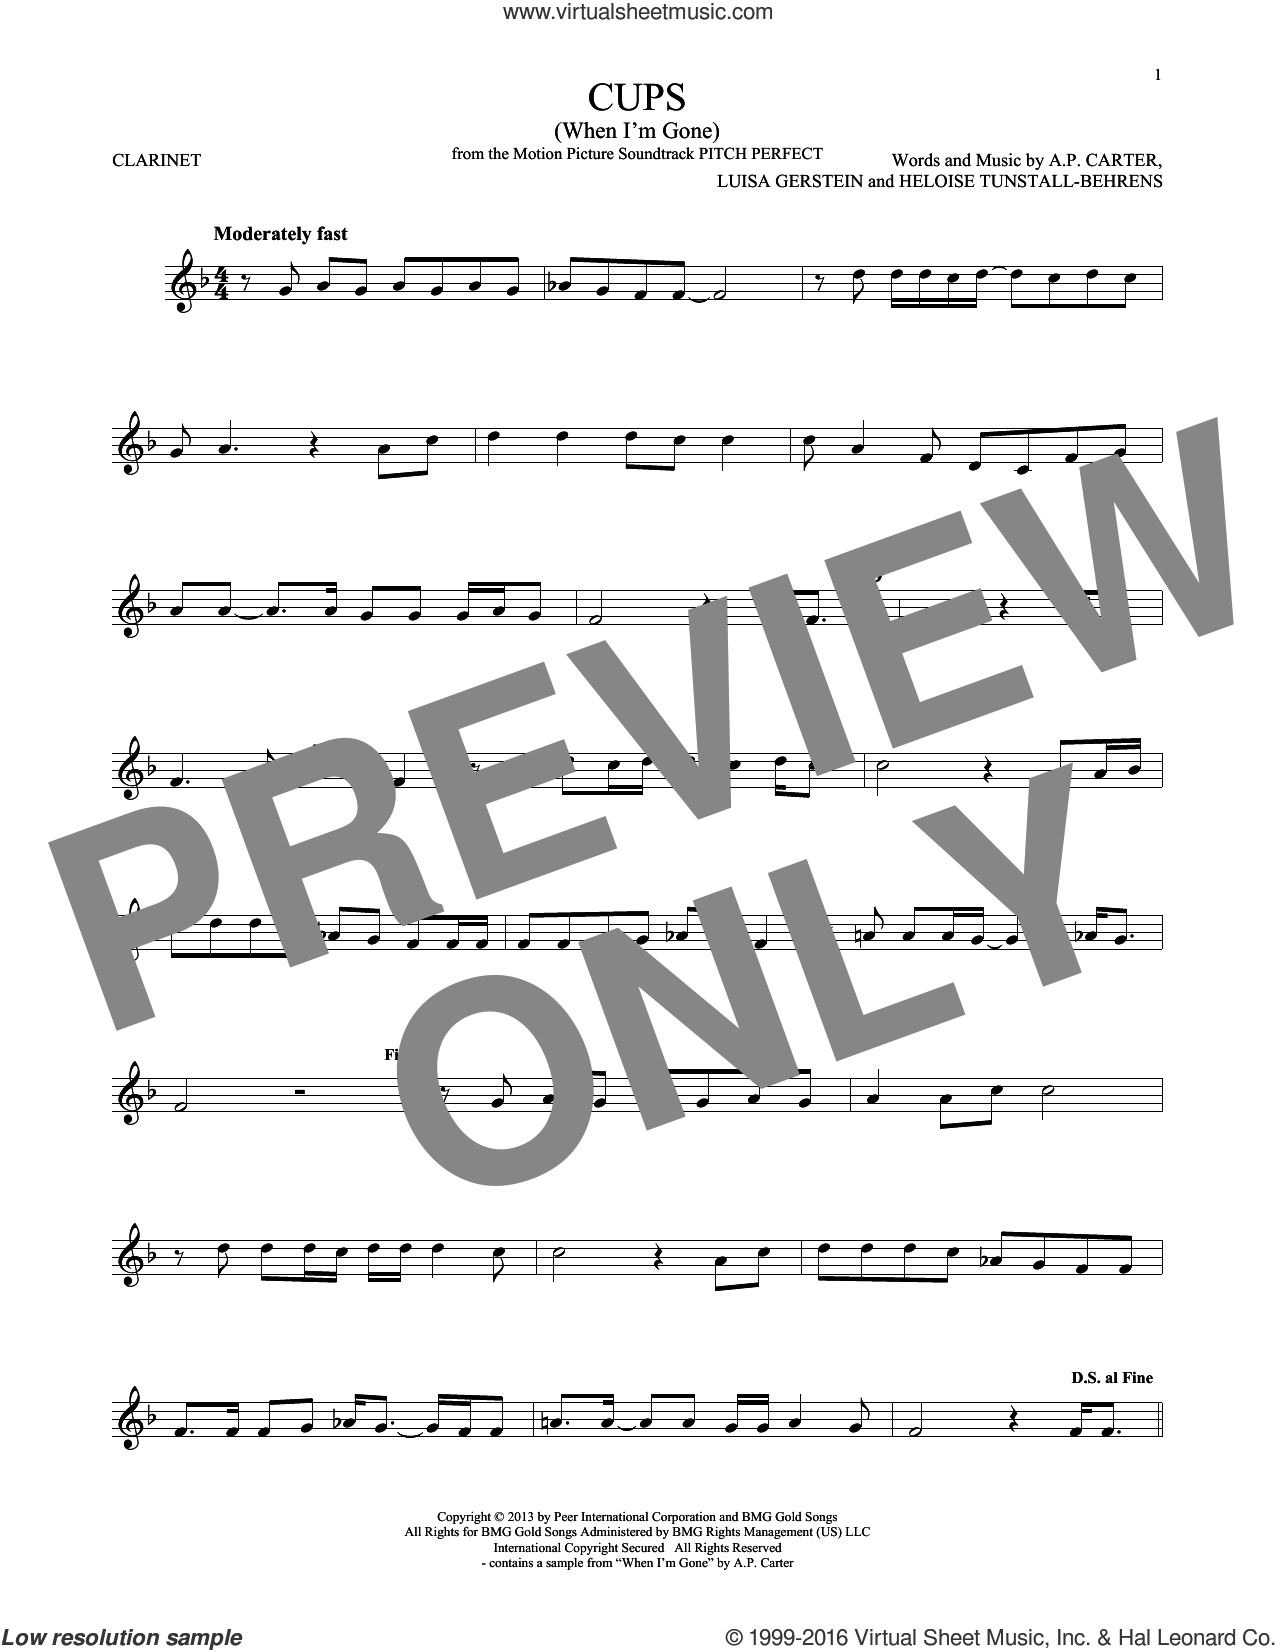 Cups (When I'm Gone) sheet music for clarinet solo by Anna Kendrick, A.P. Carter, Heloise Tunstall-Behrens and Luisa Gerstein, intermediate skill level